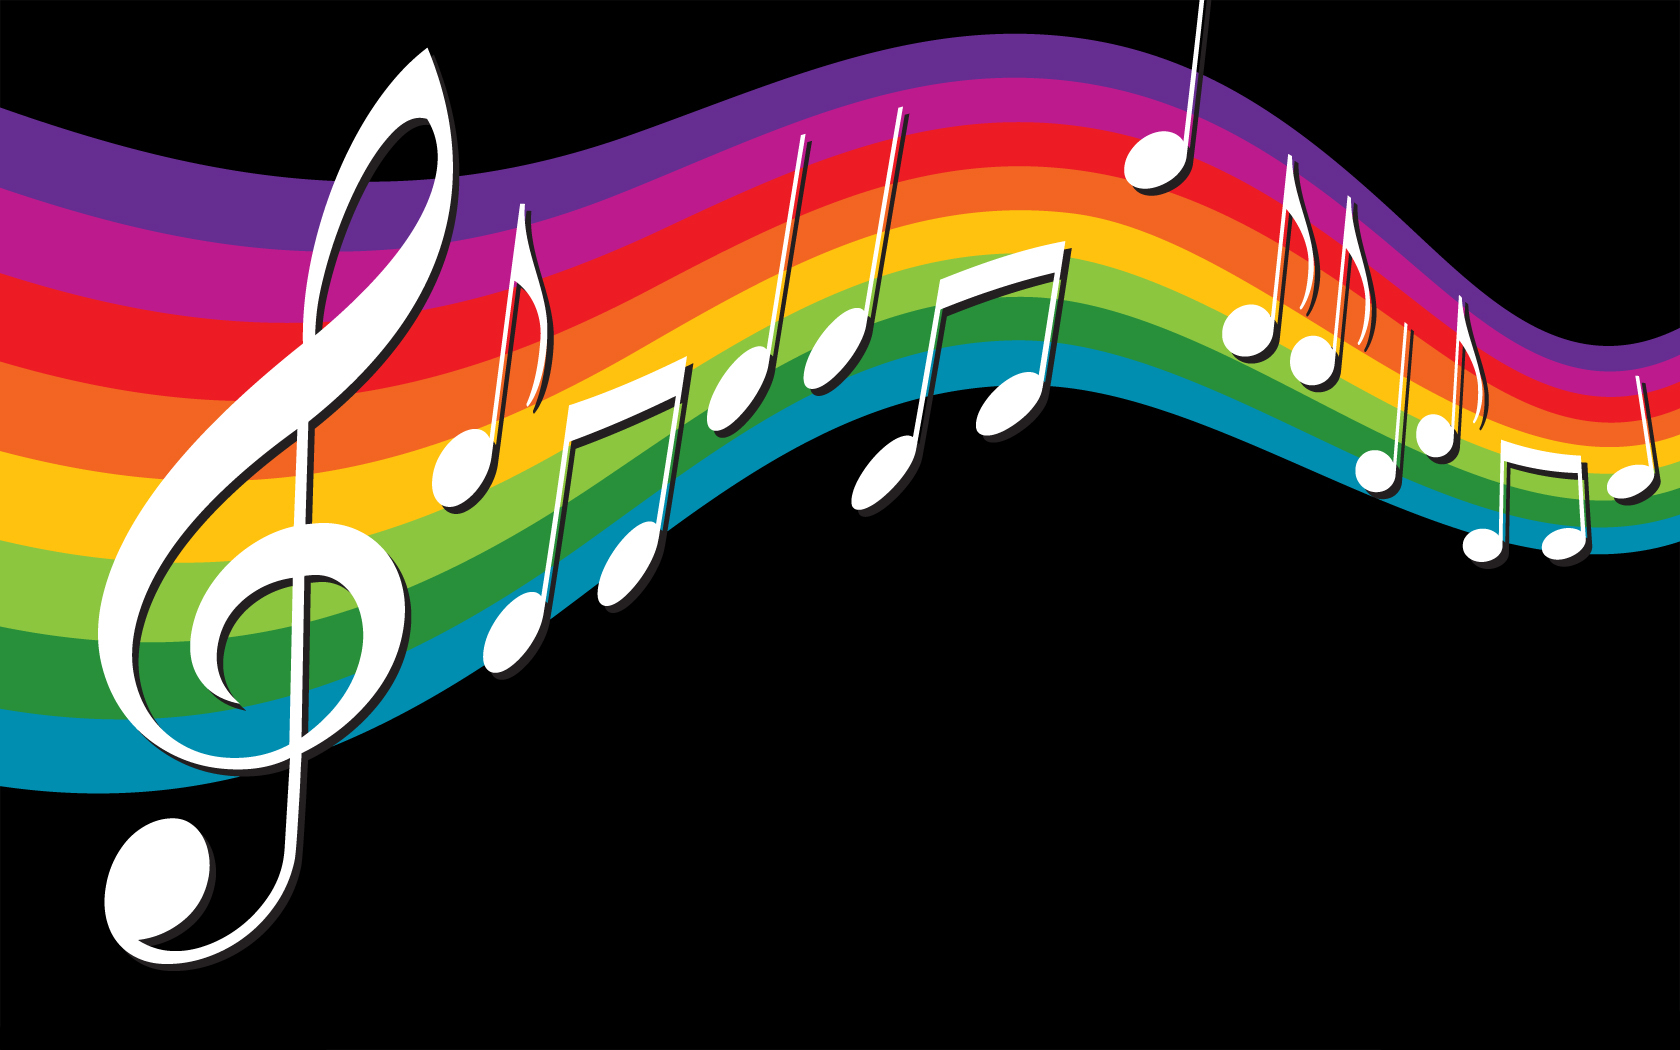 Rainbow Music Notes Background Hd Wallpaper Background Images: 8589130490590_rainbow_music_notes_wallpaper_hd.jpg